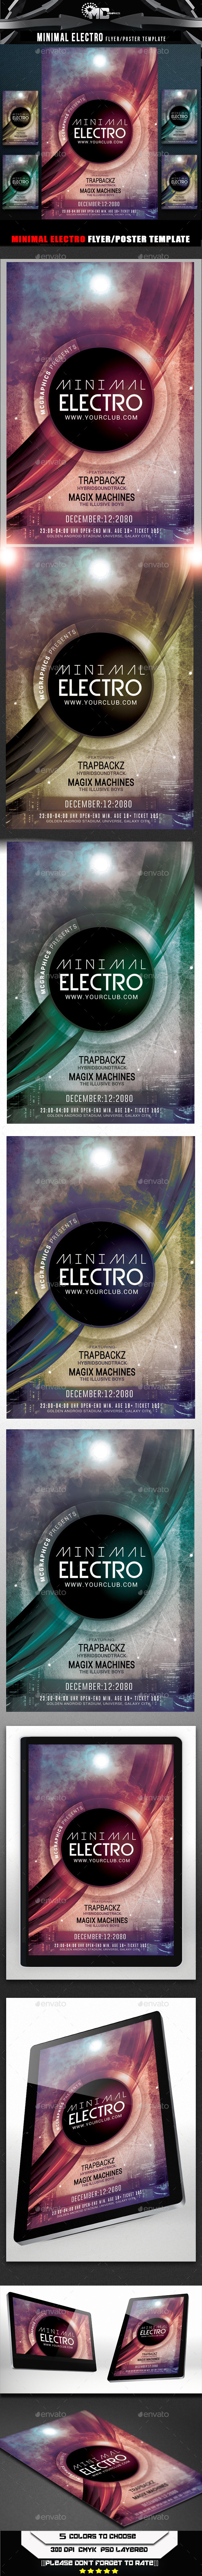 Minimal Electro Flyer Template - Clubs & Parties Events